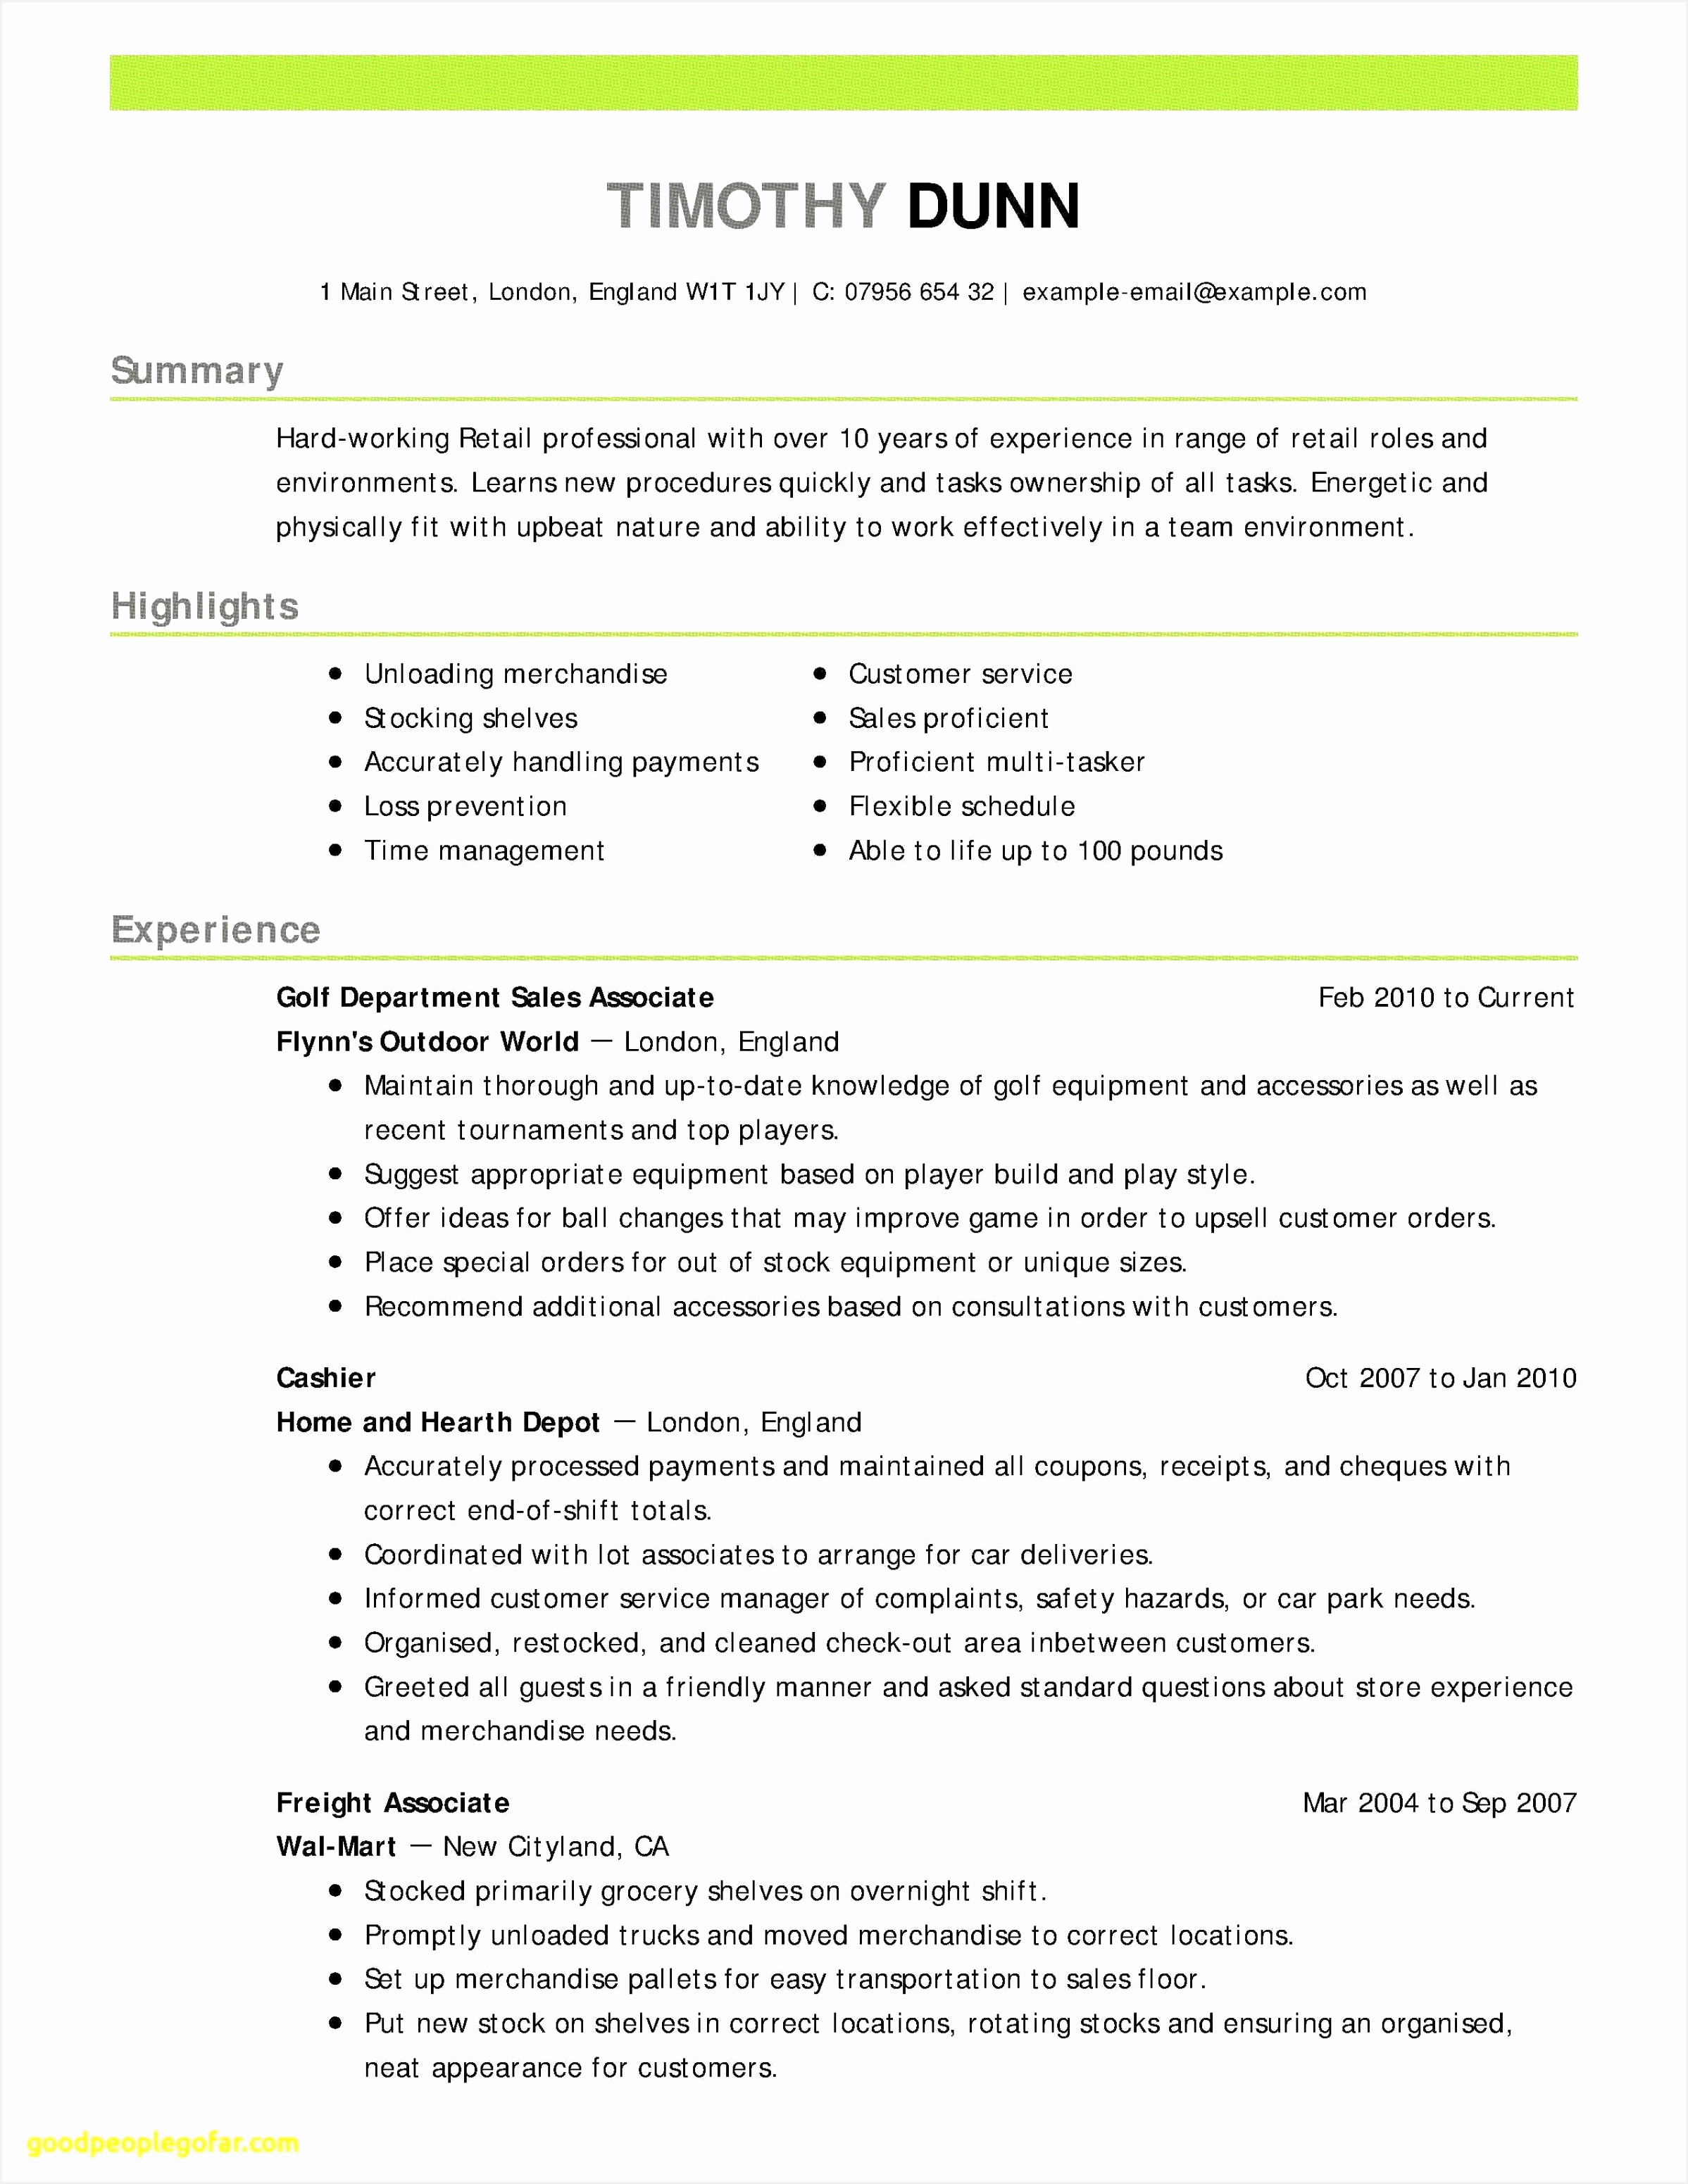 Writing A Resume Tips Free Resume format Samples Sample Resume Skills Fresh Resume Examples 0d 310223975kwfg